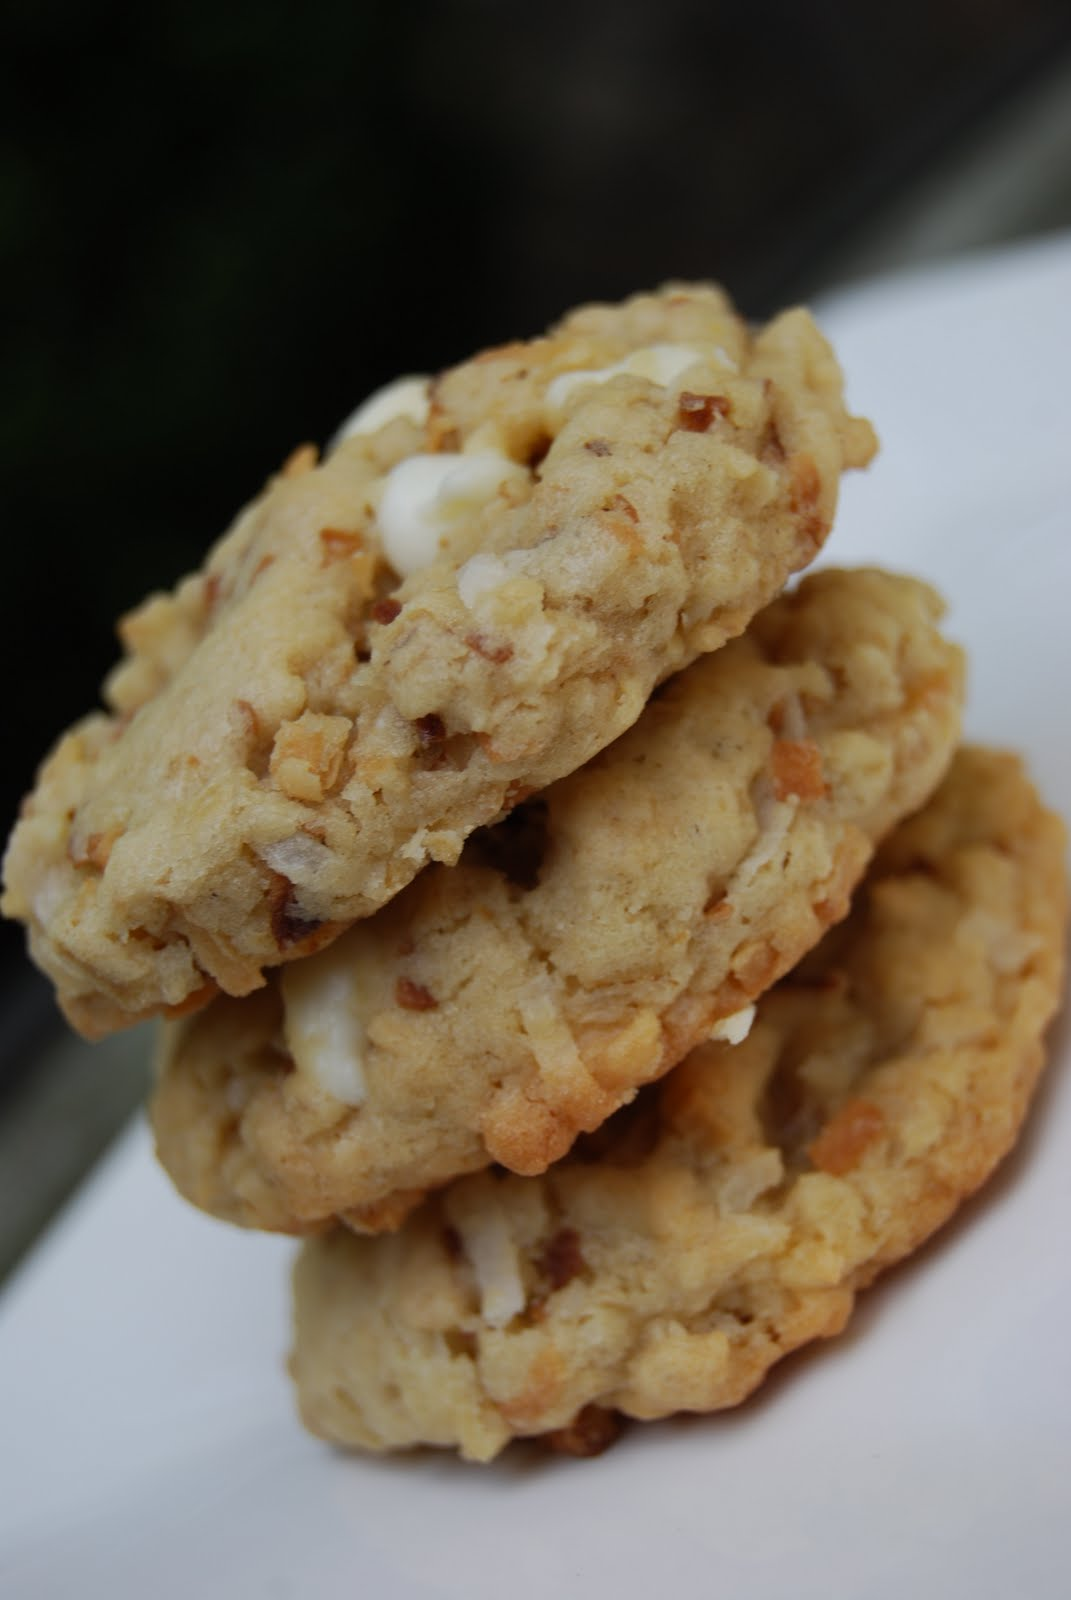 Oatmeal White Chocolate Lime Coconut Cookies - Macaroni and Cheesecake